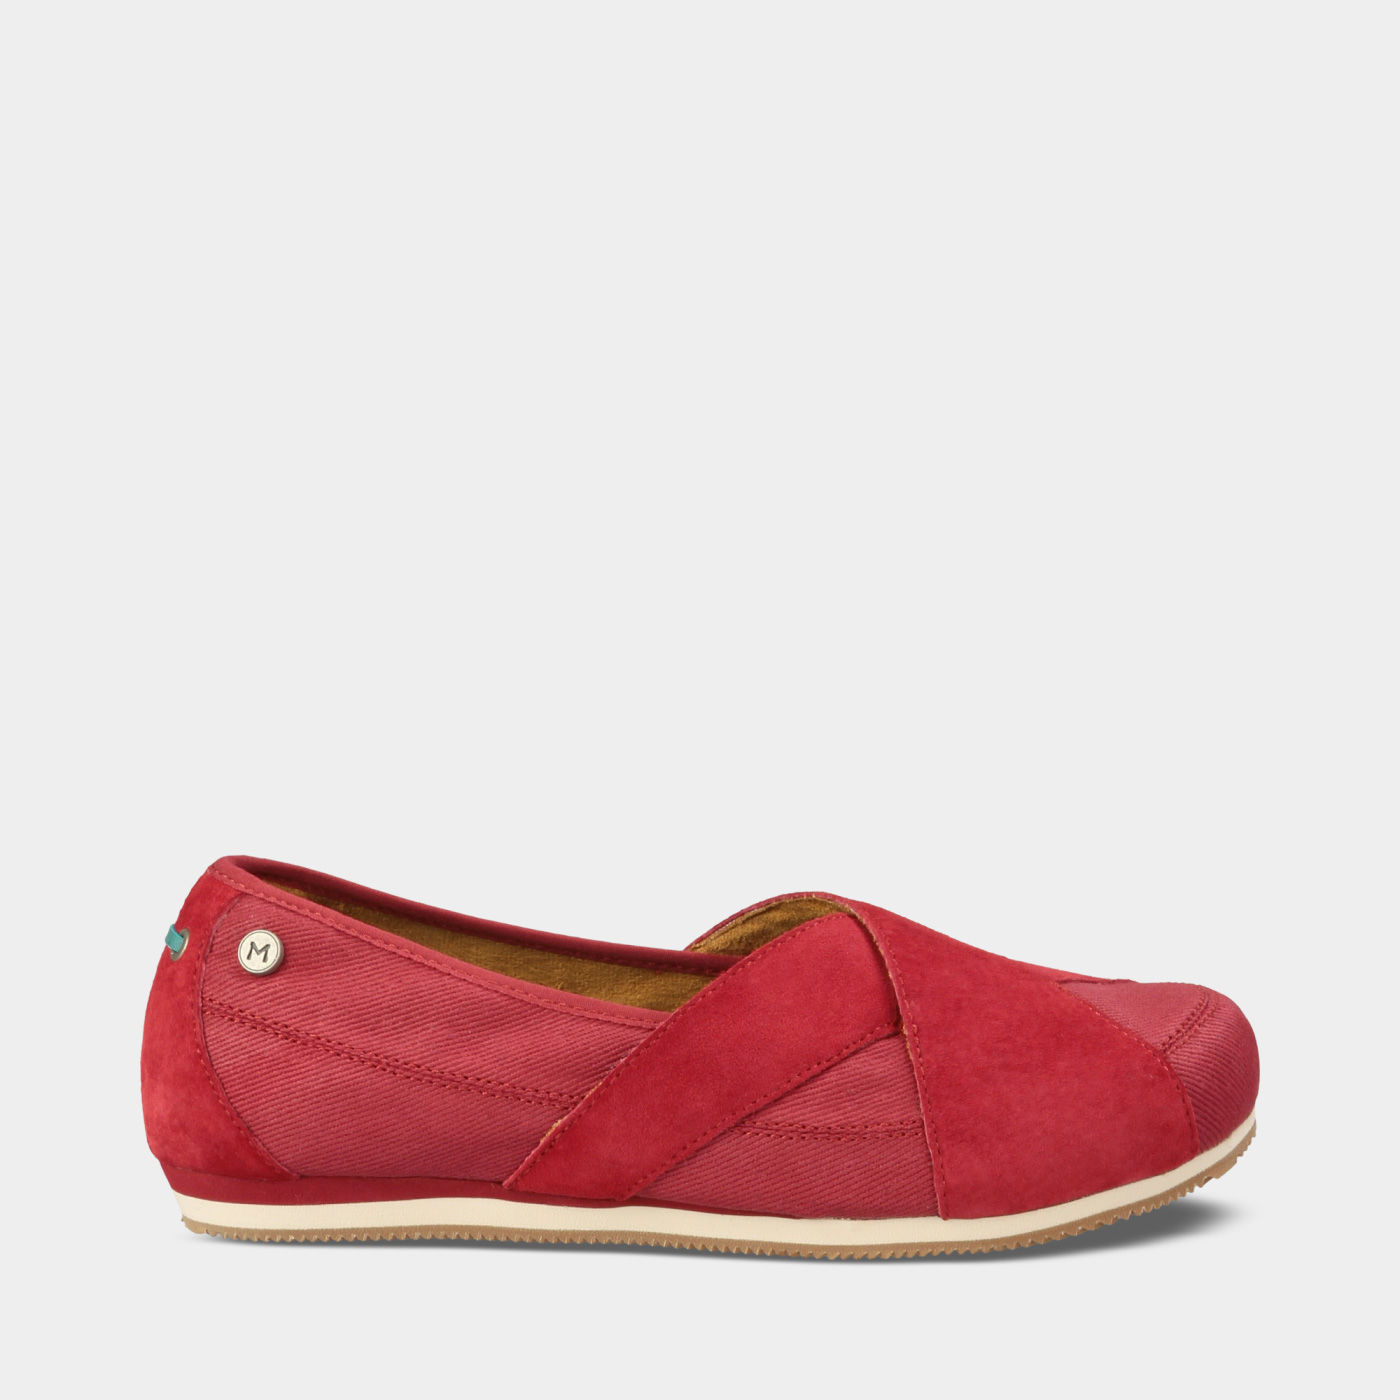 Mozo Red Shoes